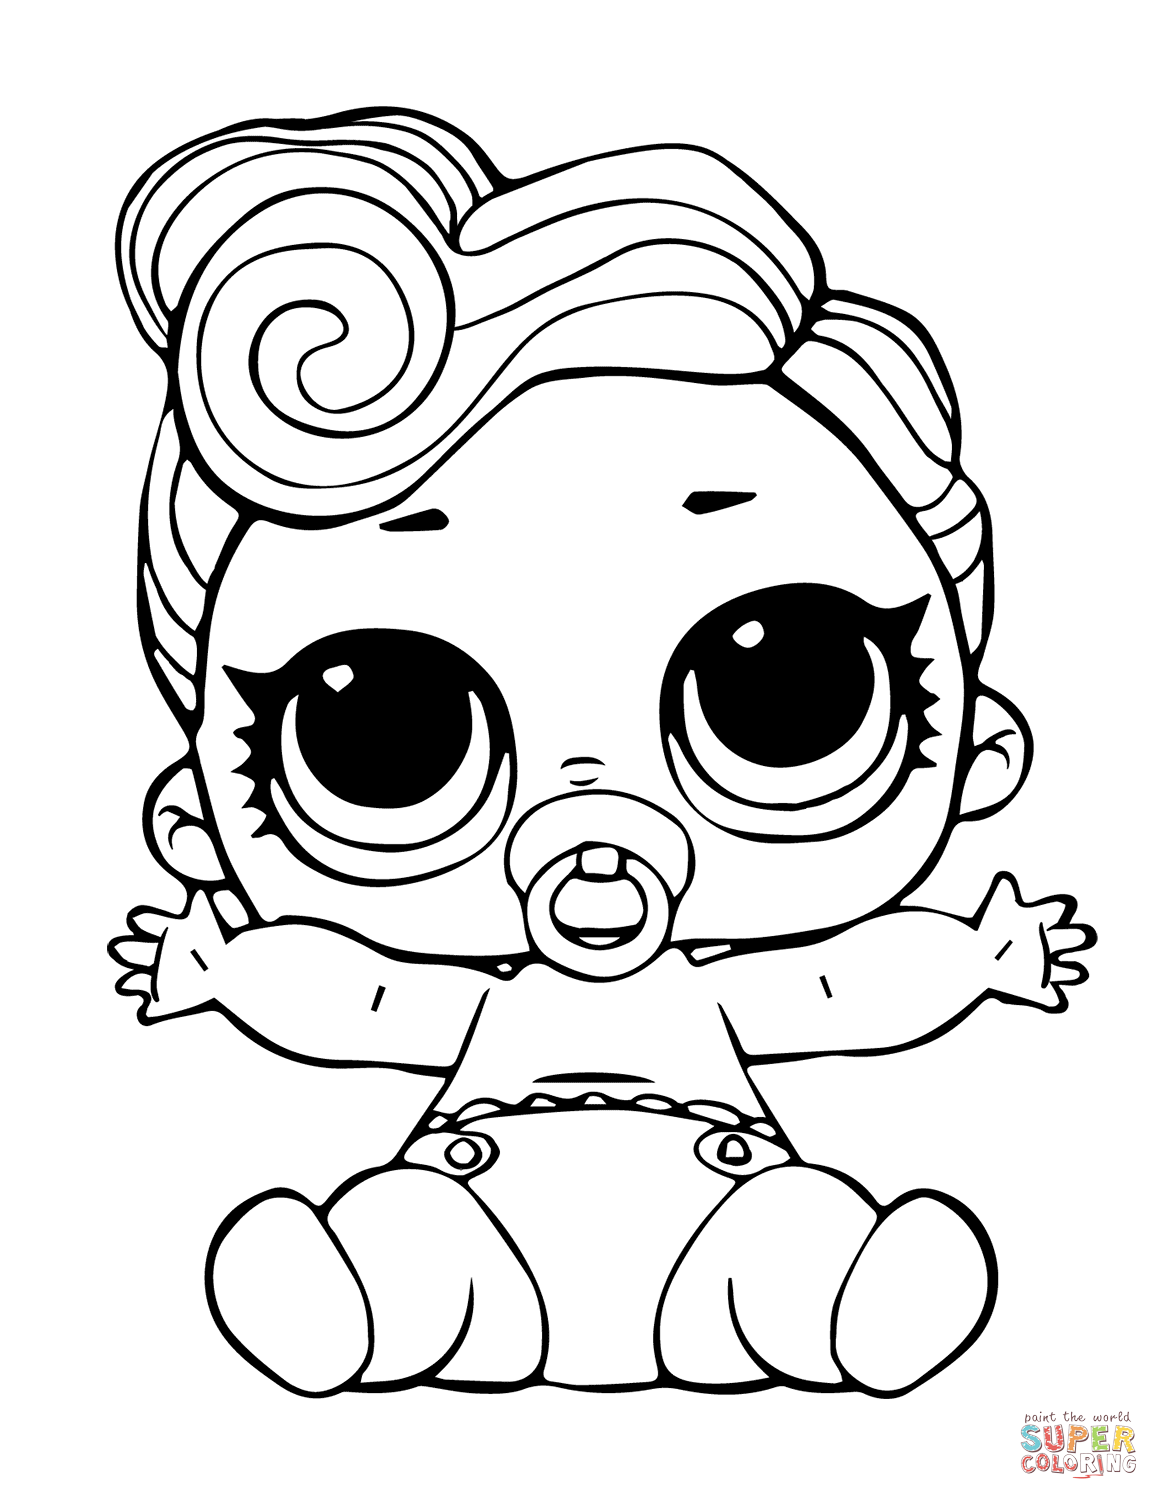 Lol Doll The Lil Queen Coloring Page Free Printable Coloring Pages Cartoon Coloring Pages Coloring Pages Designs Coloring Books